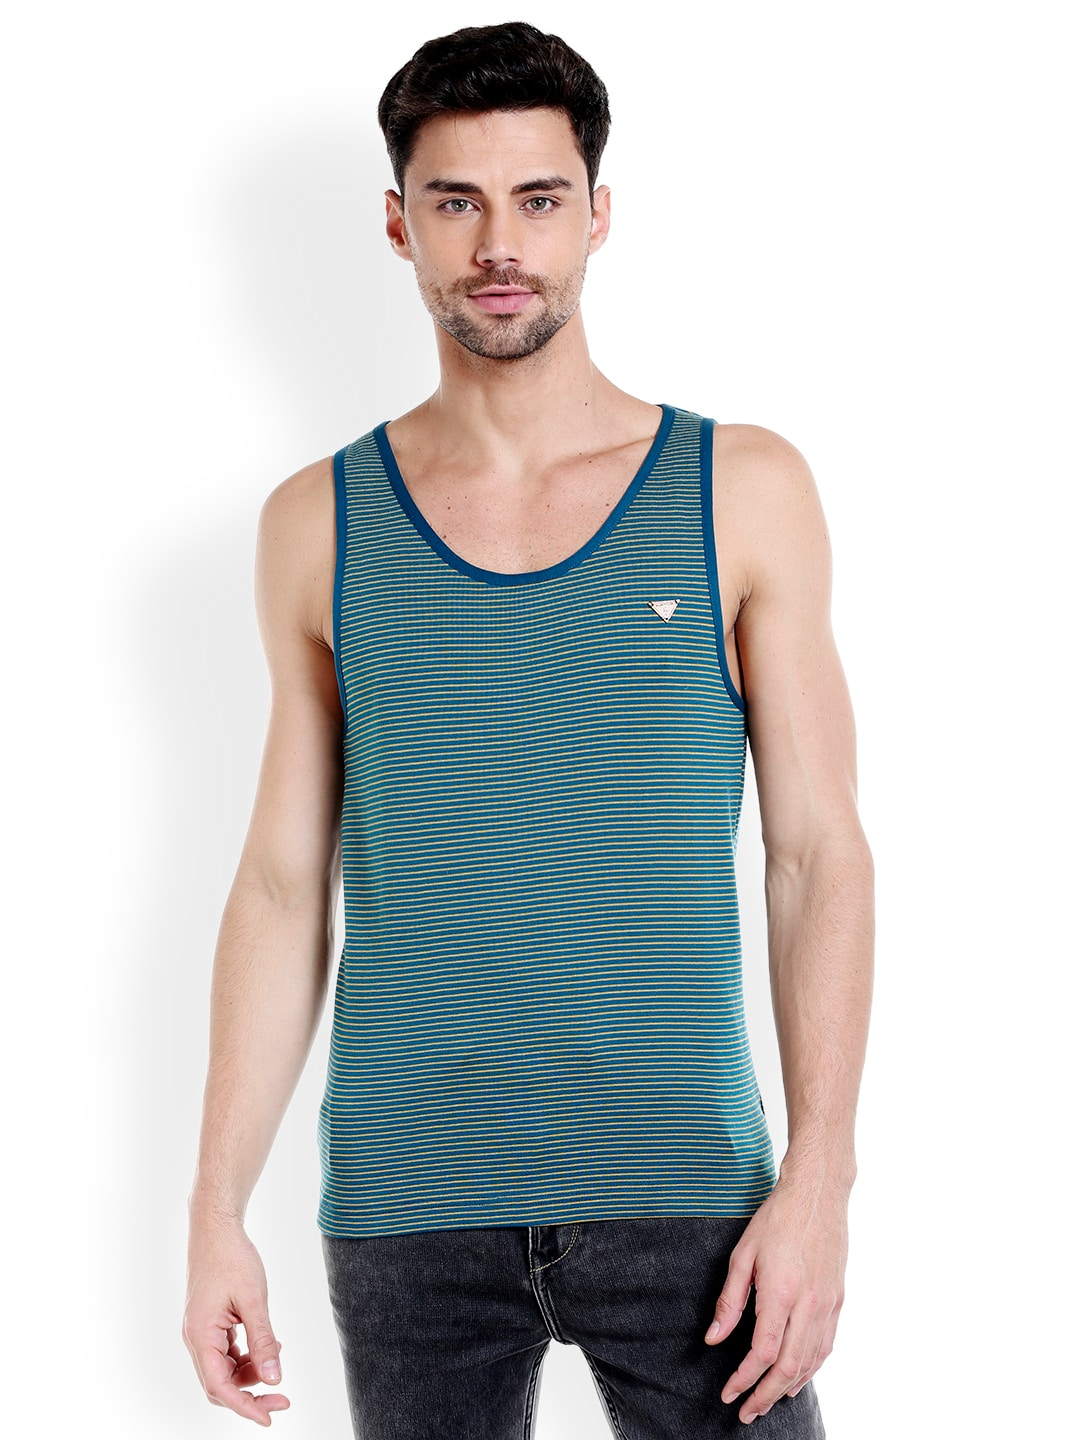 Masculino Latino Men Green & Navy-Blue Striped T-shirt MLF4036-A image